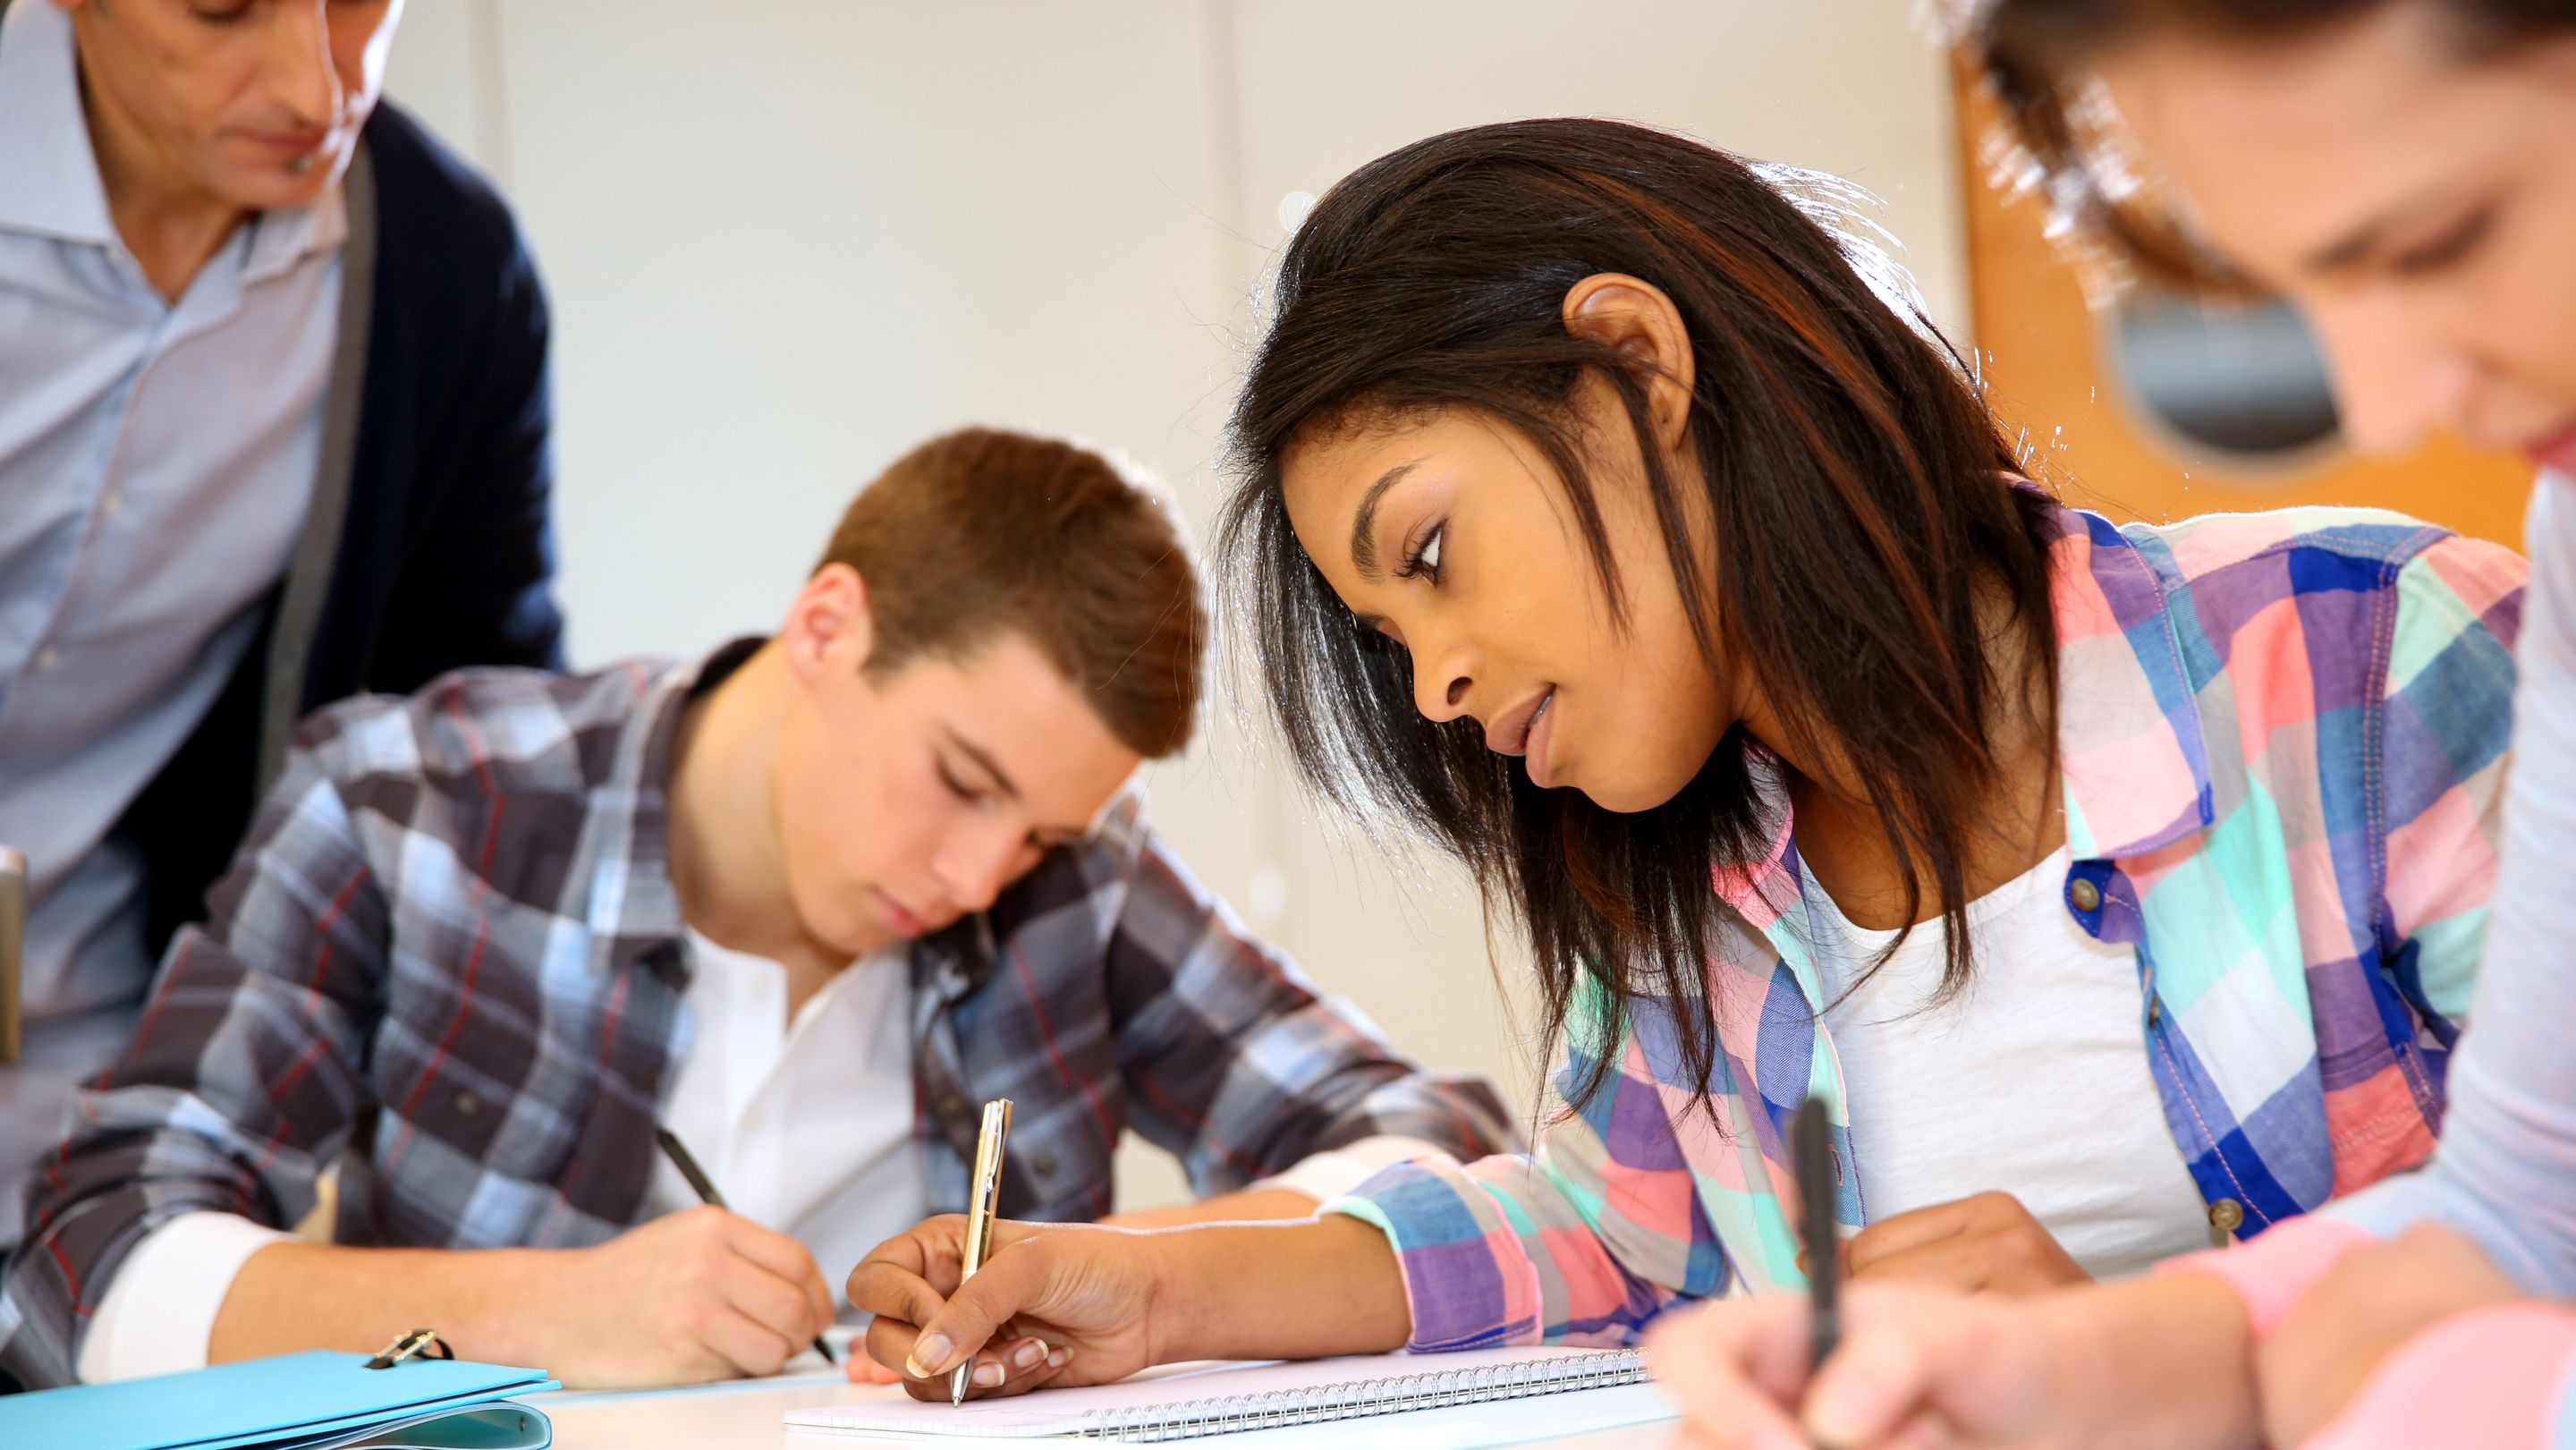 6 Tips For Teaching Poetry Writing To Teens